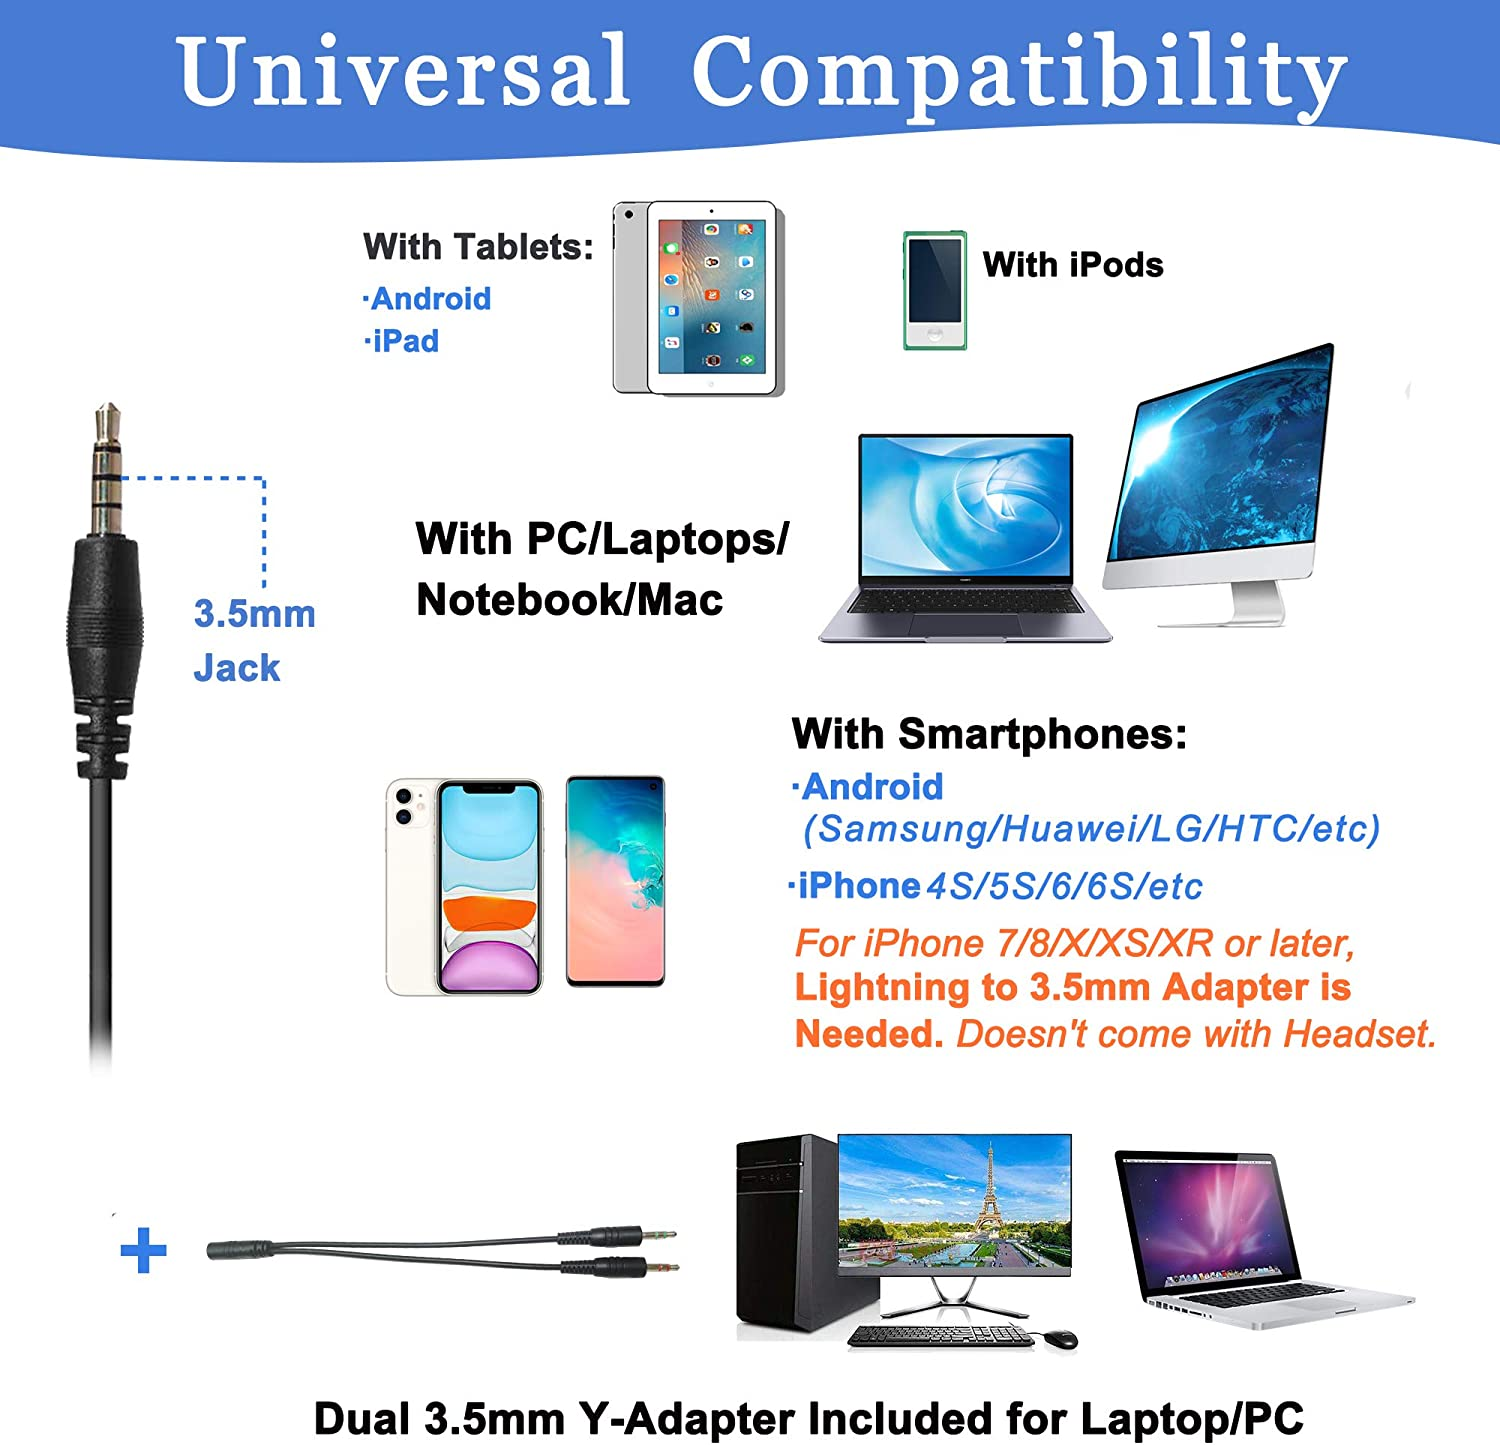 3.5mm Cell Phone Headphone for iPhone Samsung Skype Webinar Business Office Call Center Computer Headset with Microphone for Mobile Phone Laptop PC Tablet Ultra Comfort Clearer Voice